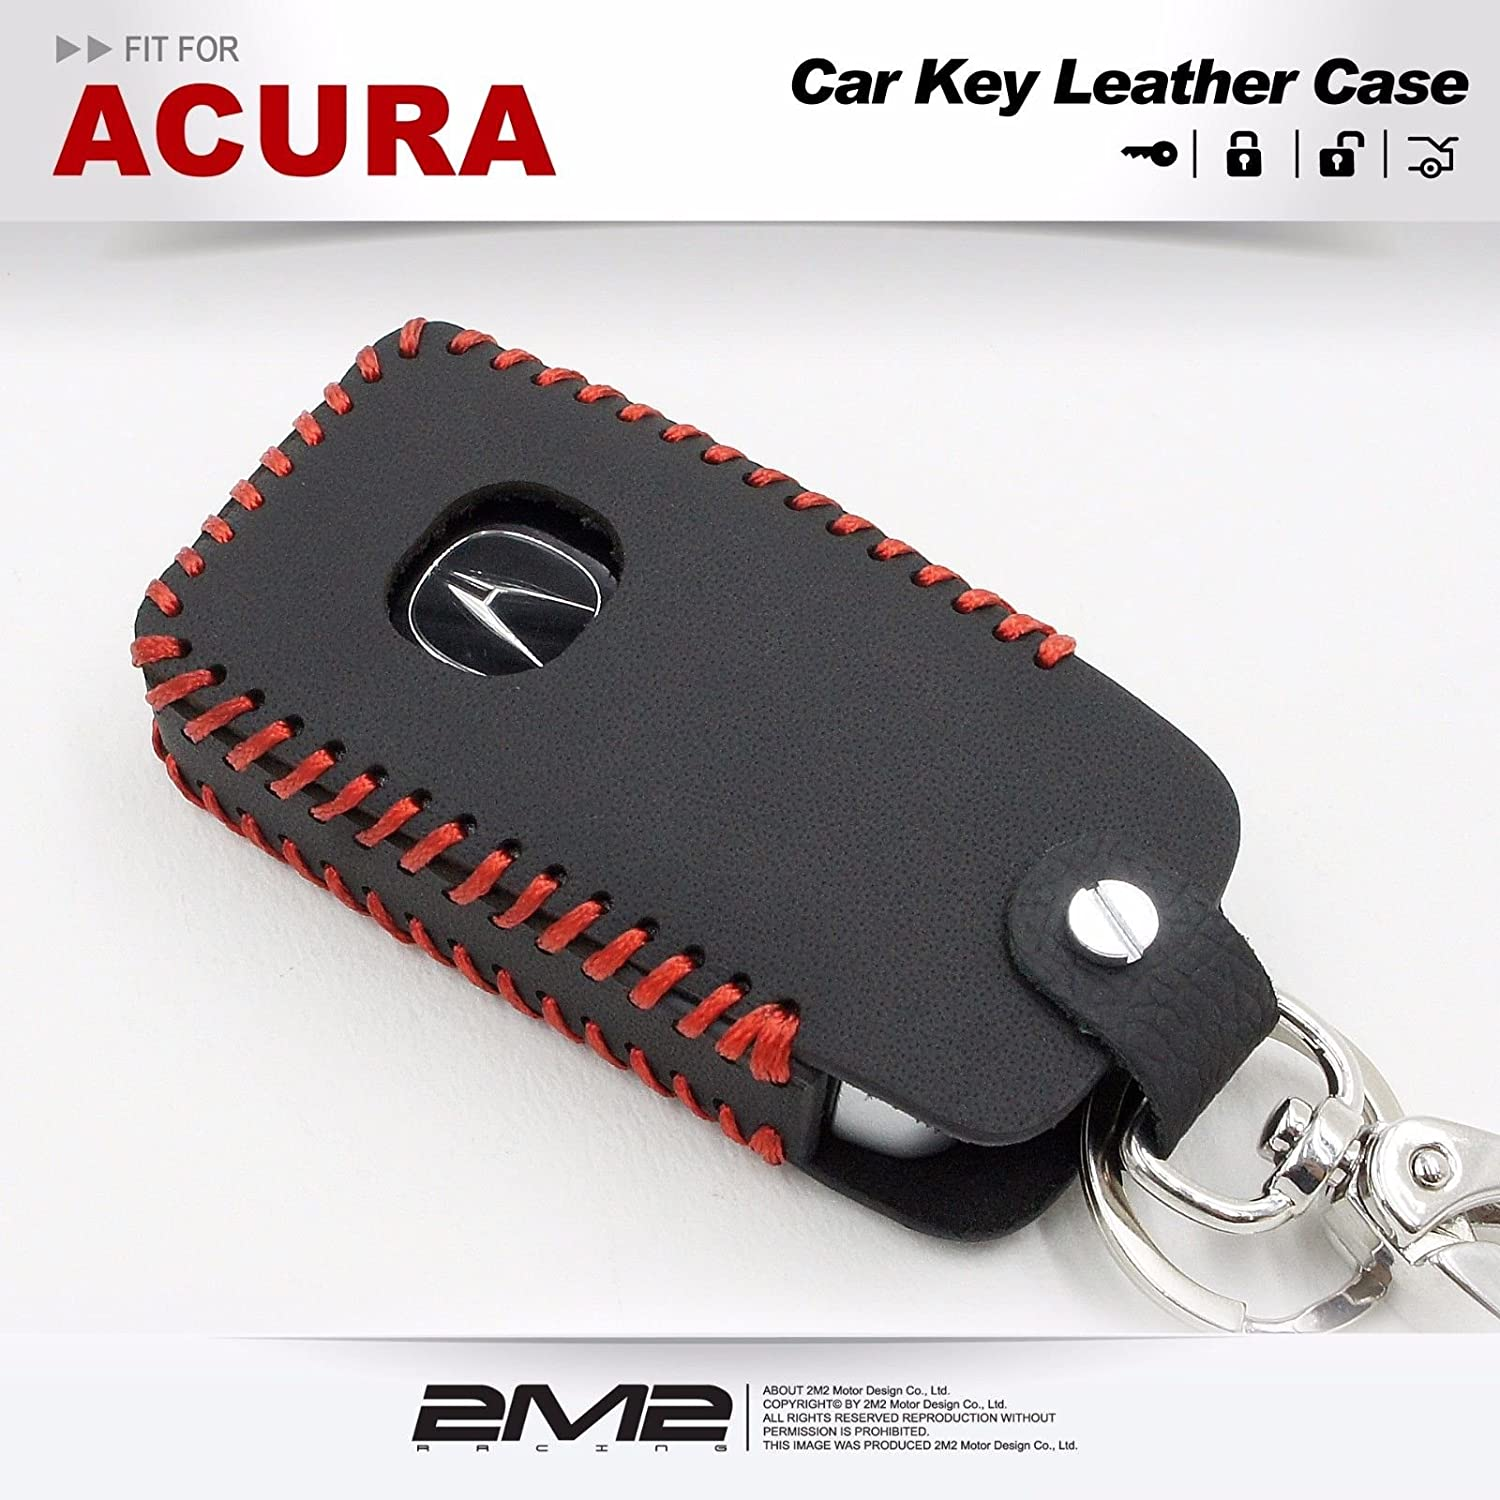 ac04-06-001 Leather Key Fob Holder Case Chain Cover fit For 2018 ACURA RLX RDX MDX ILX